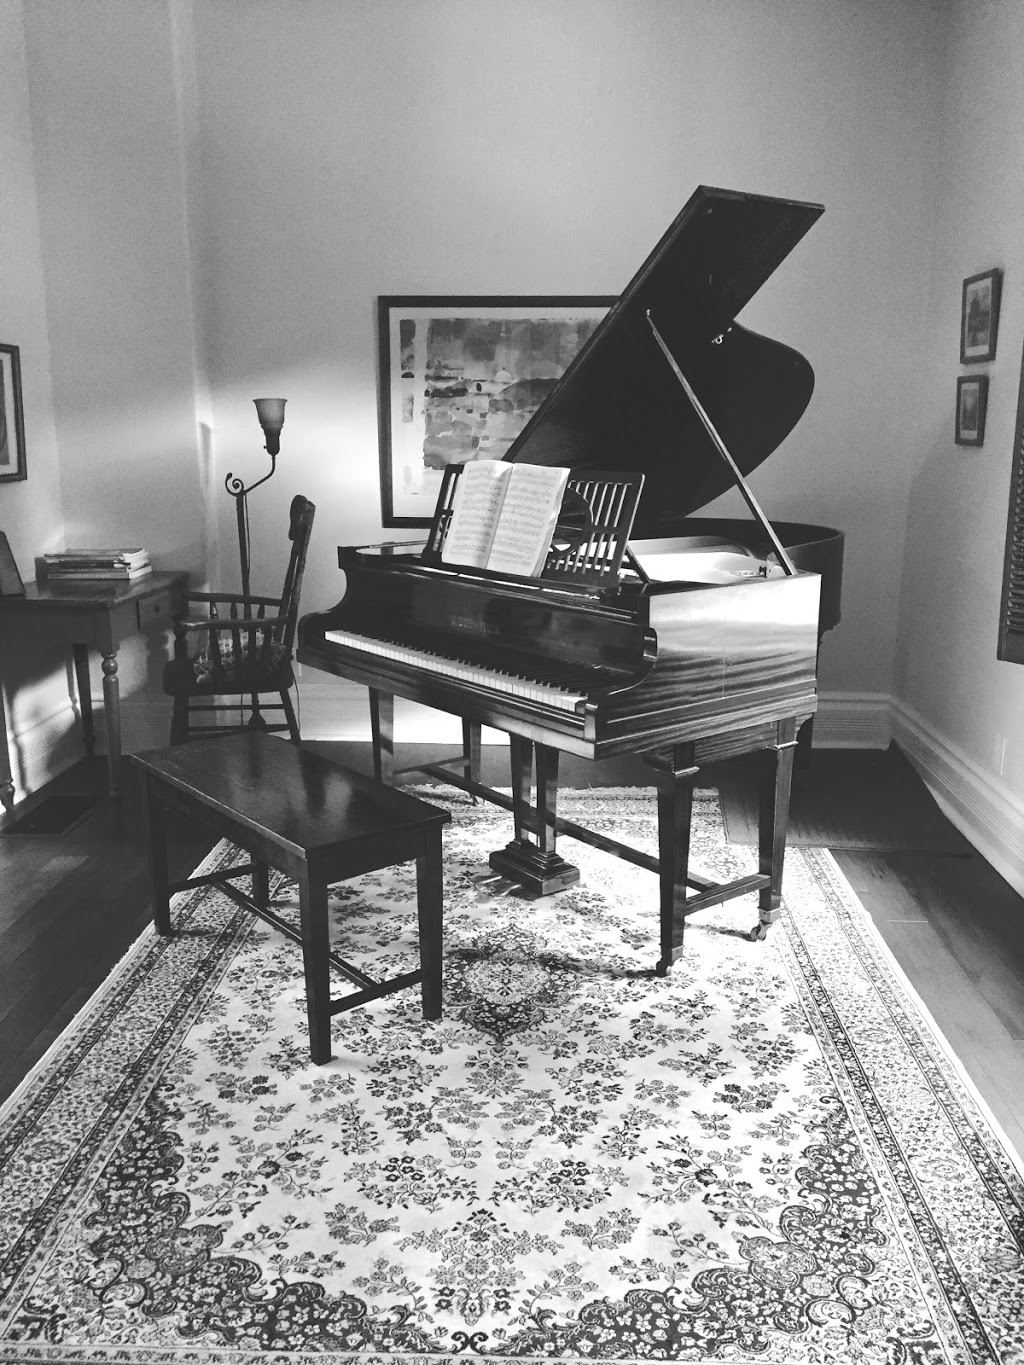 Eric Greenwood Piano Studio | electronics store | 254 Arthur St N, Guelph, ON N1E 4V8, Canada | 5197314301 OR +1 519-731-4301